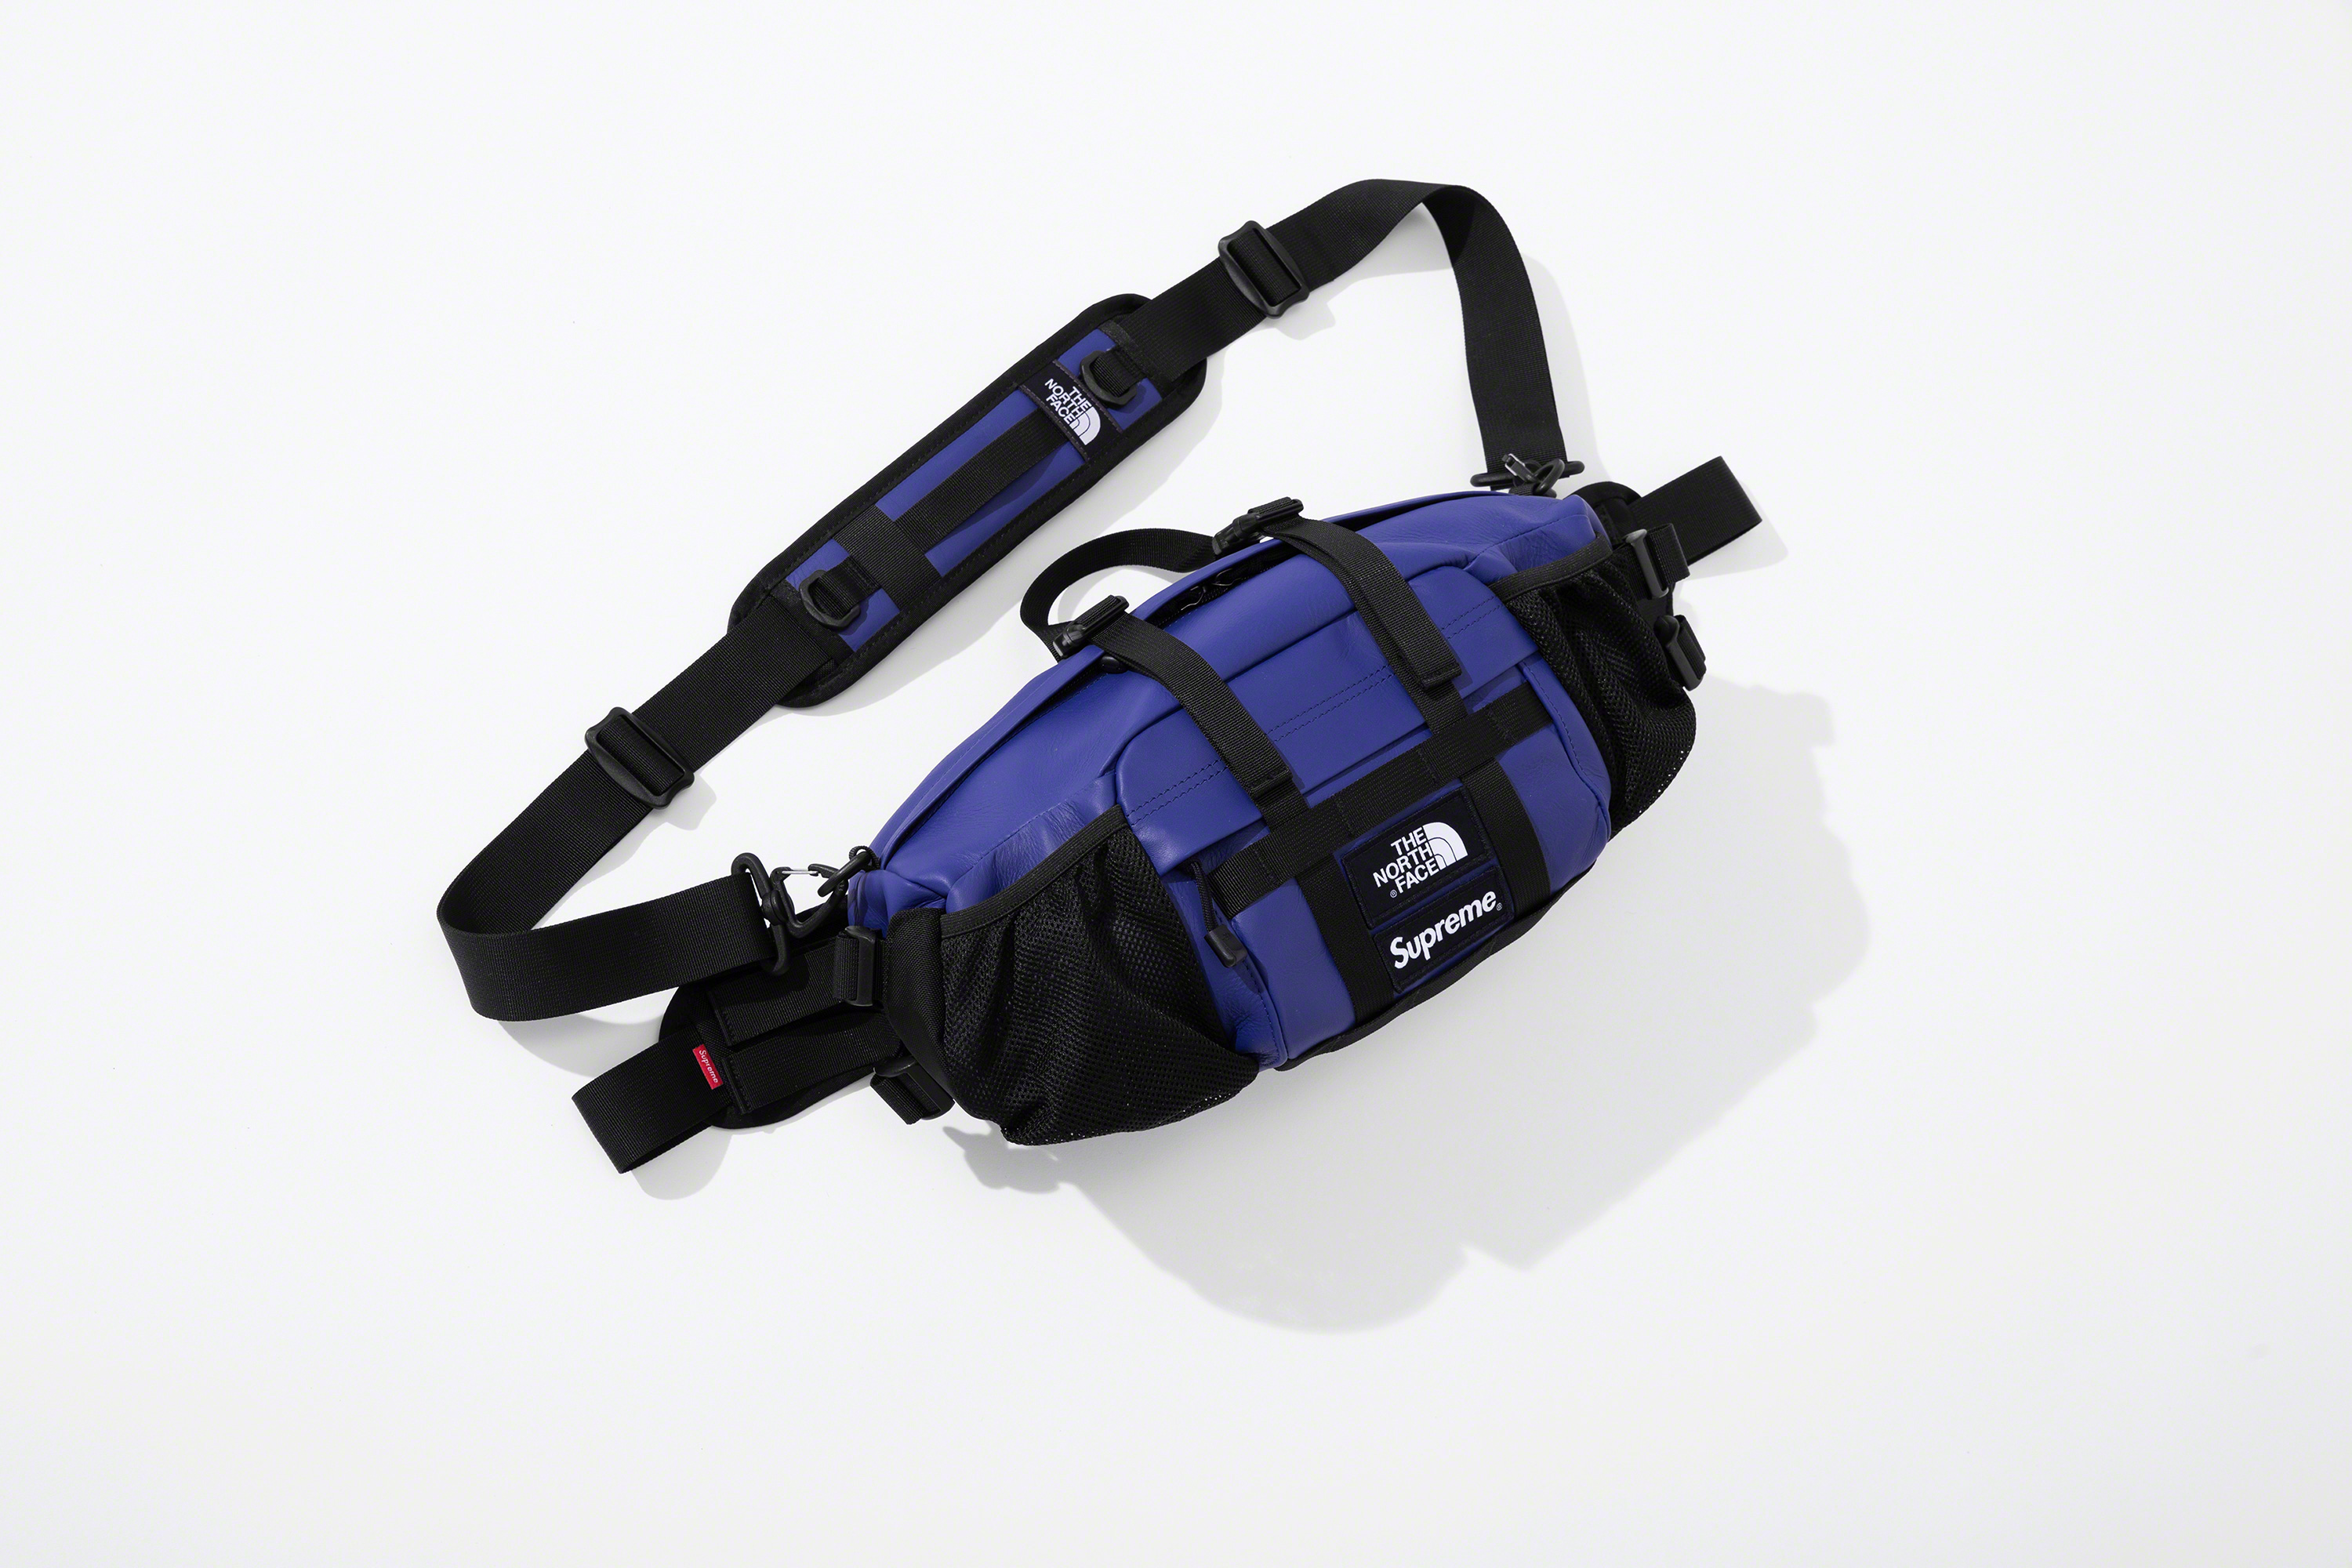 supreme-the-north-face-leather-mountain-waist-bag-2018aw-release-20181020-week9